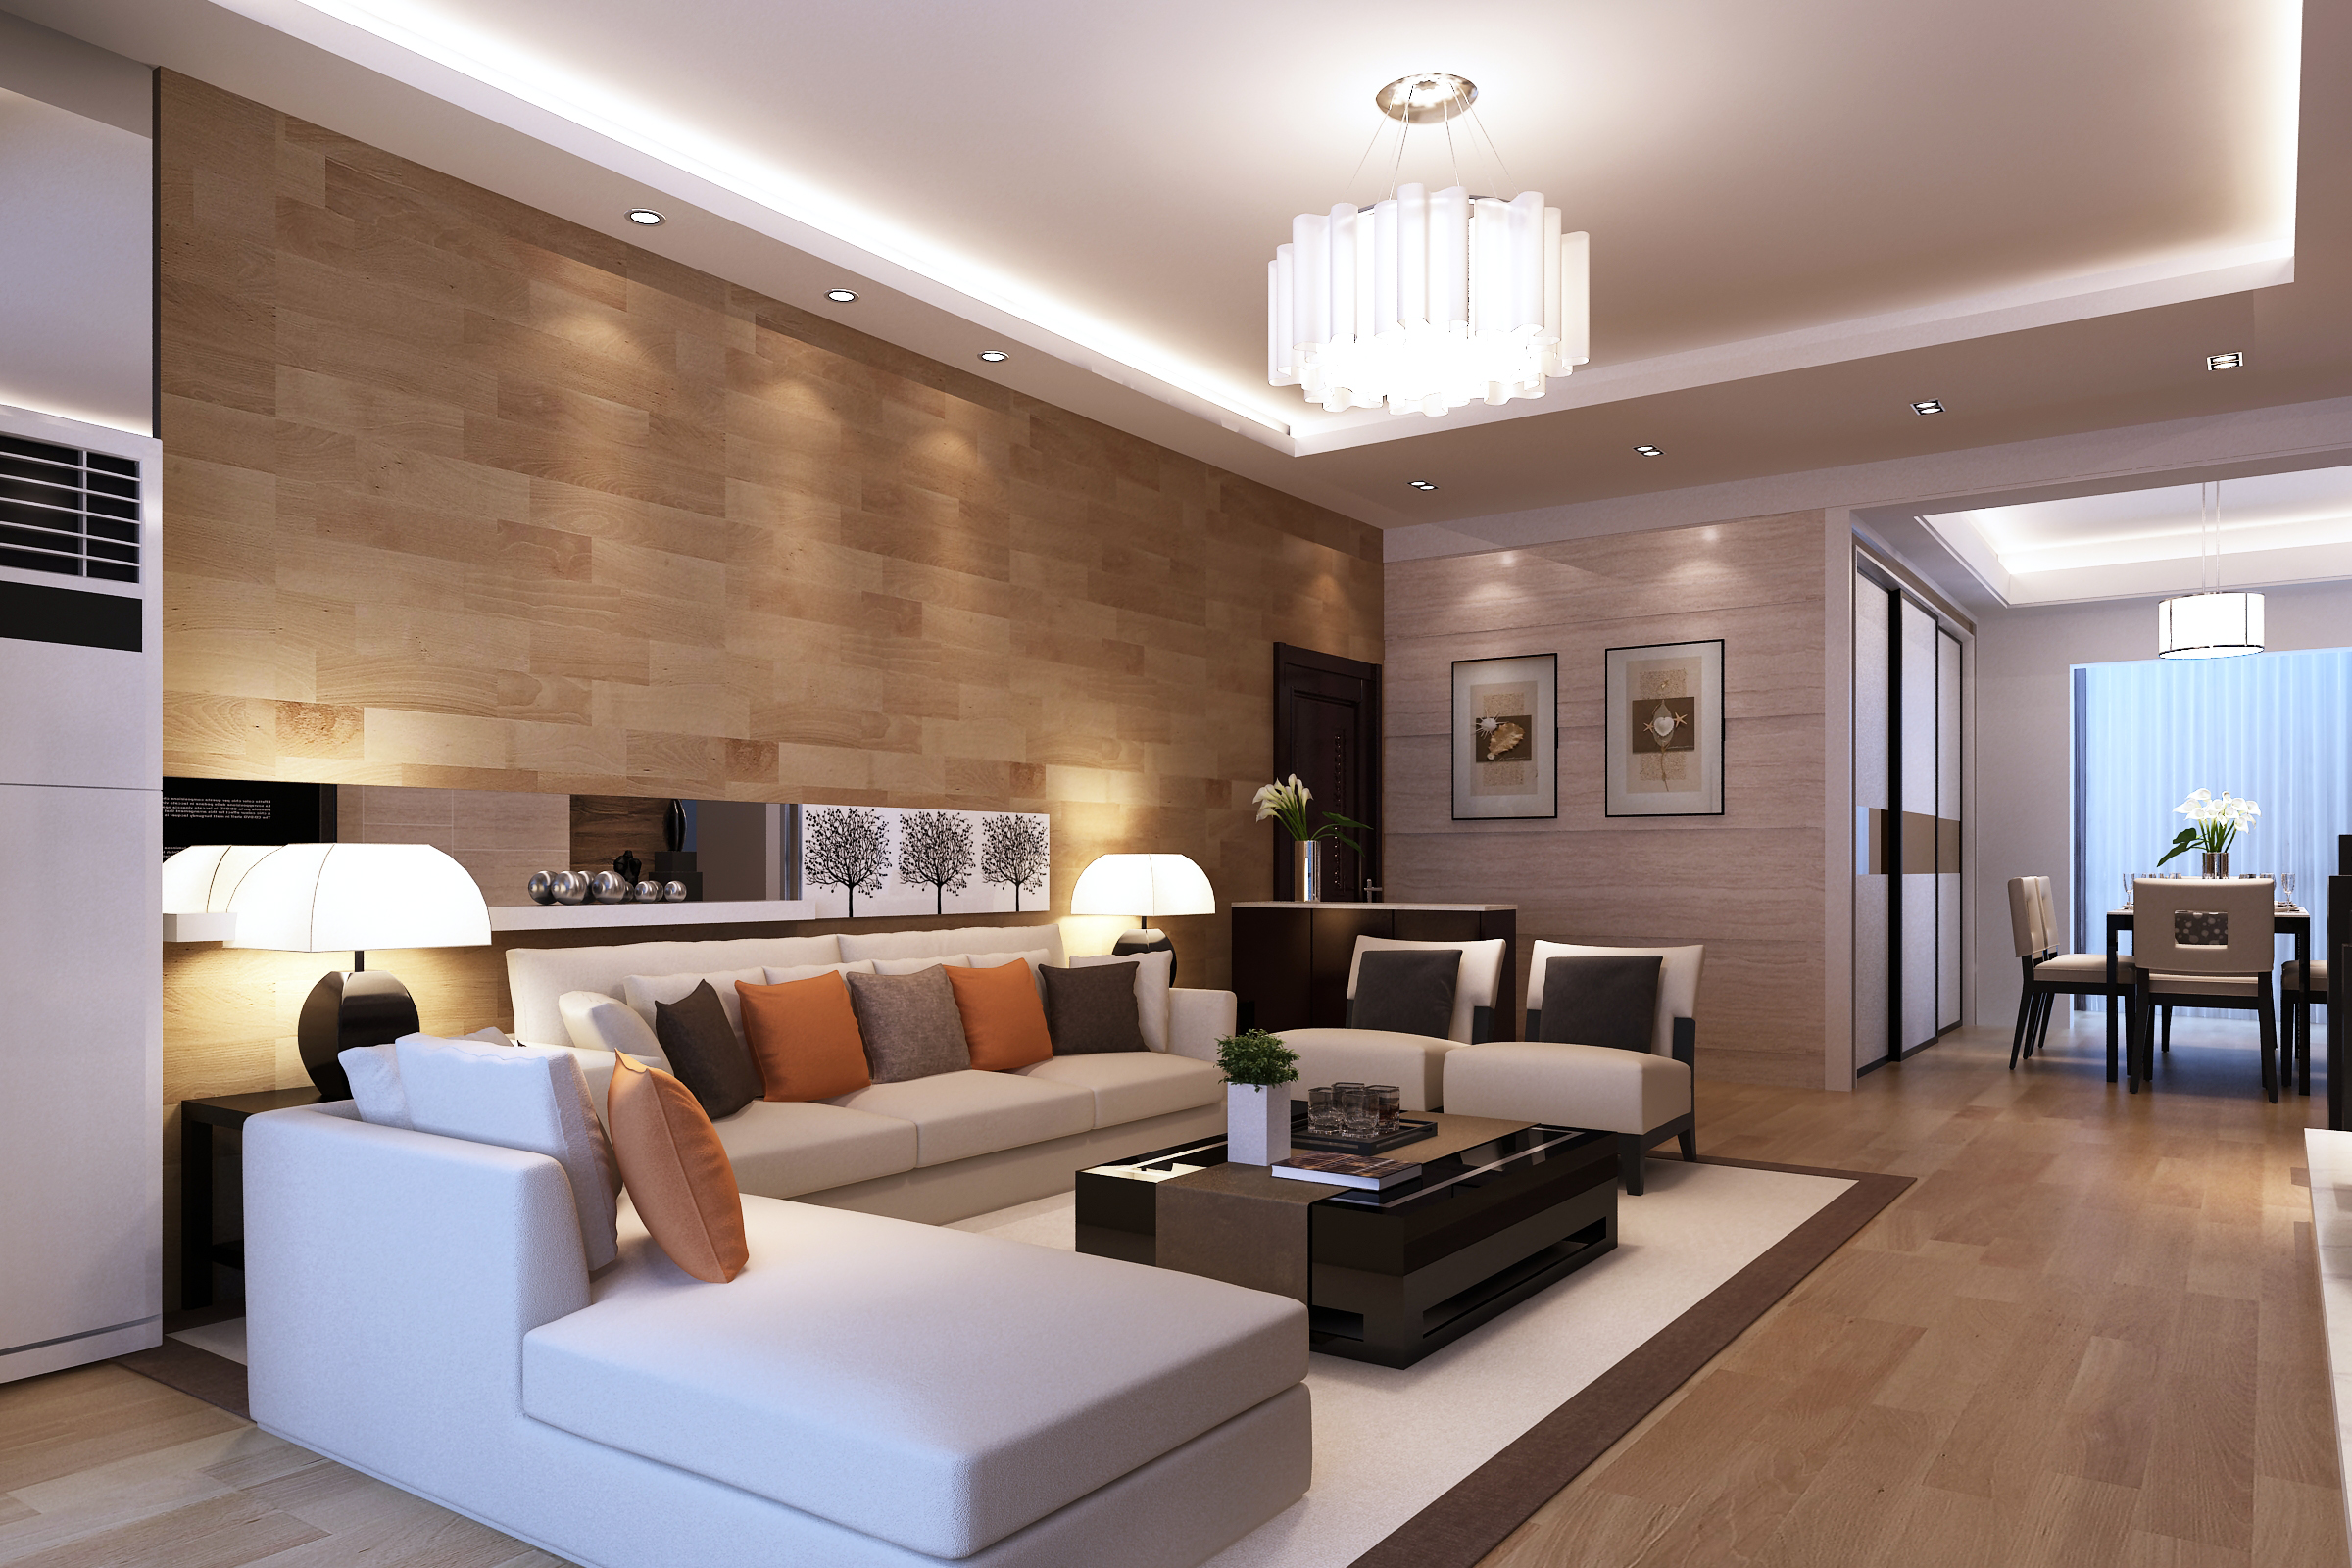 modern living room decor pics decorating on a budget rooms and technology for it homemajestic design ideas as interior